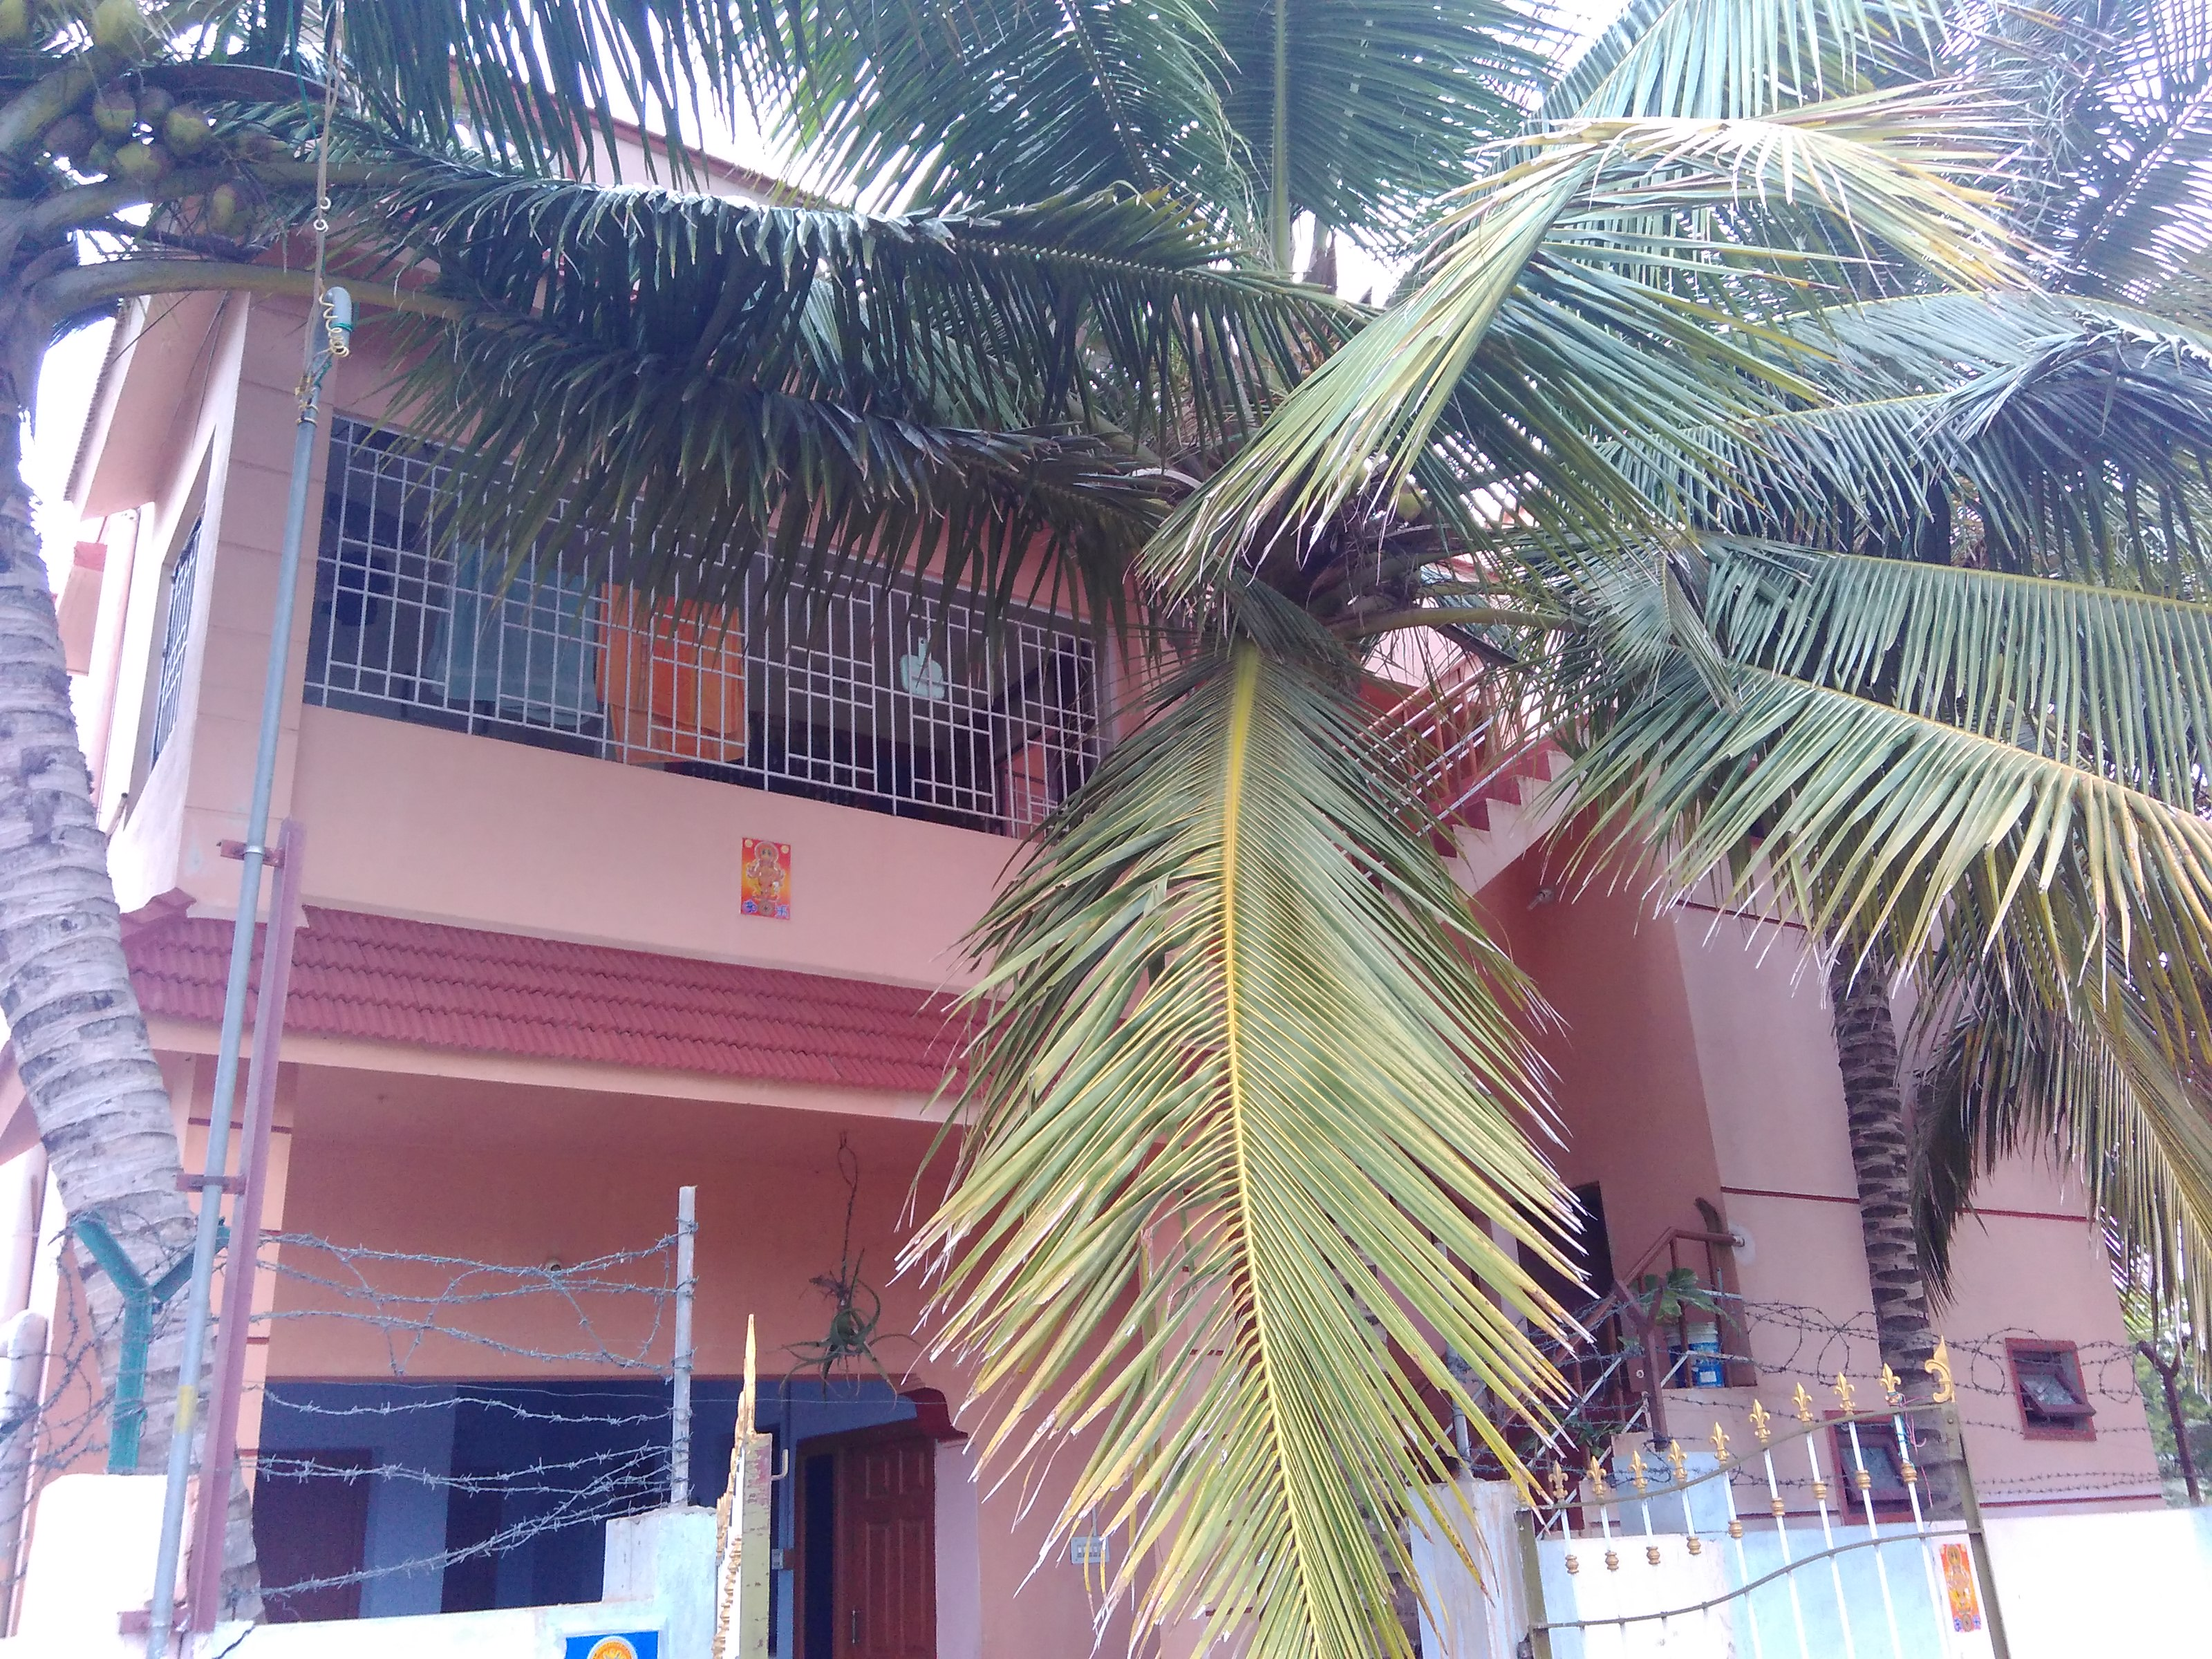 5.5 Sqft, 3 BHK House in Sulur